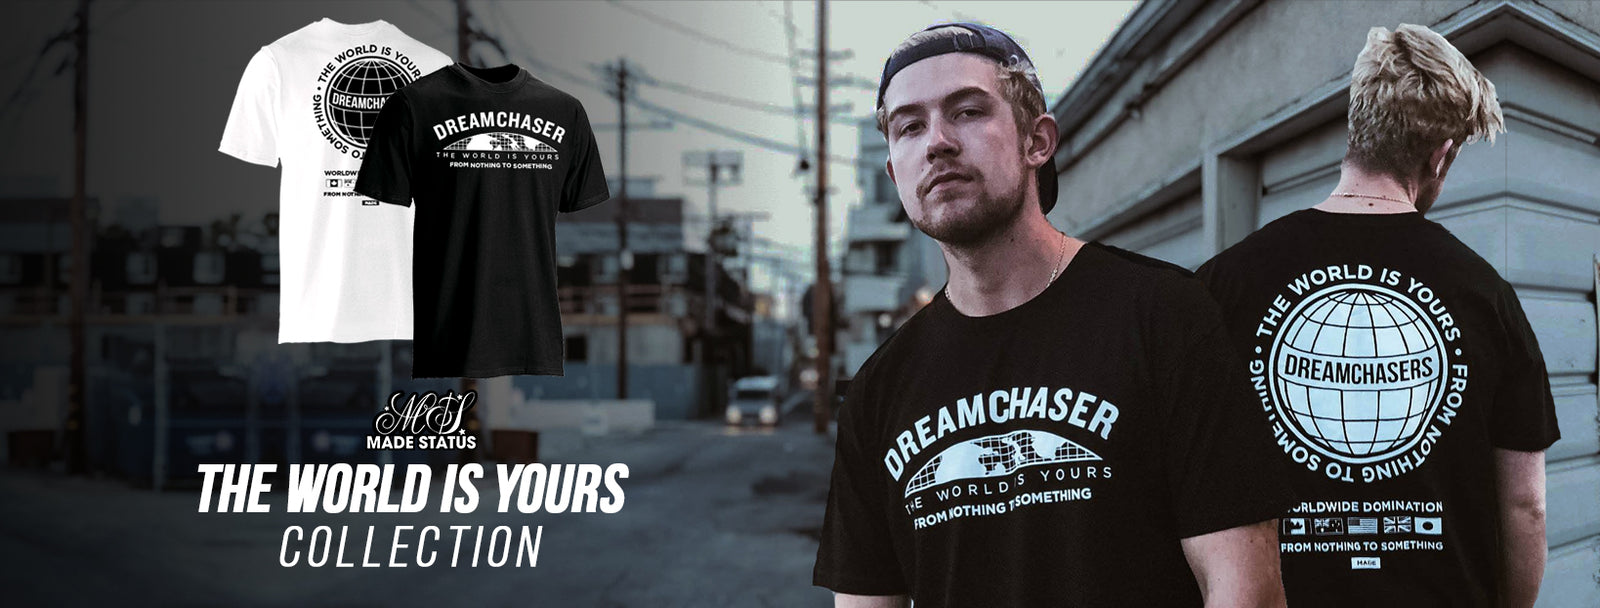 THE WORLD IS YOURS COLLECTION